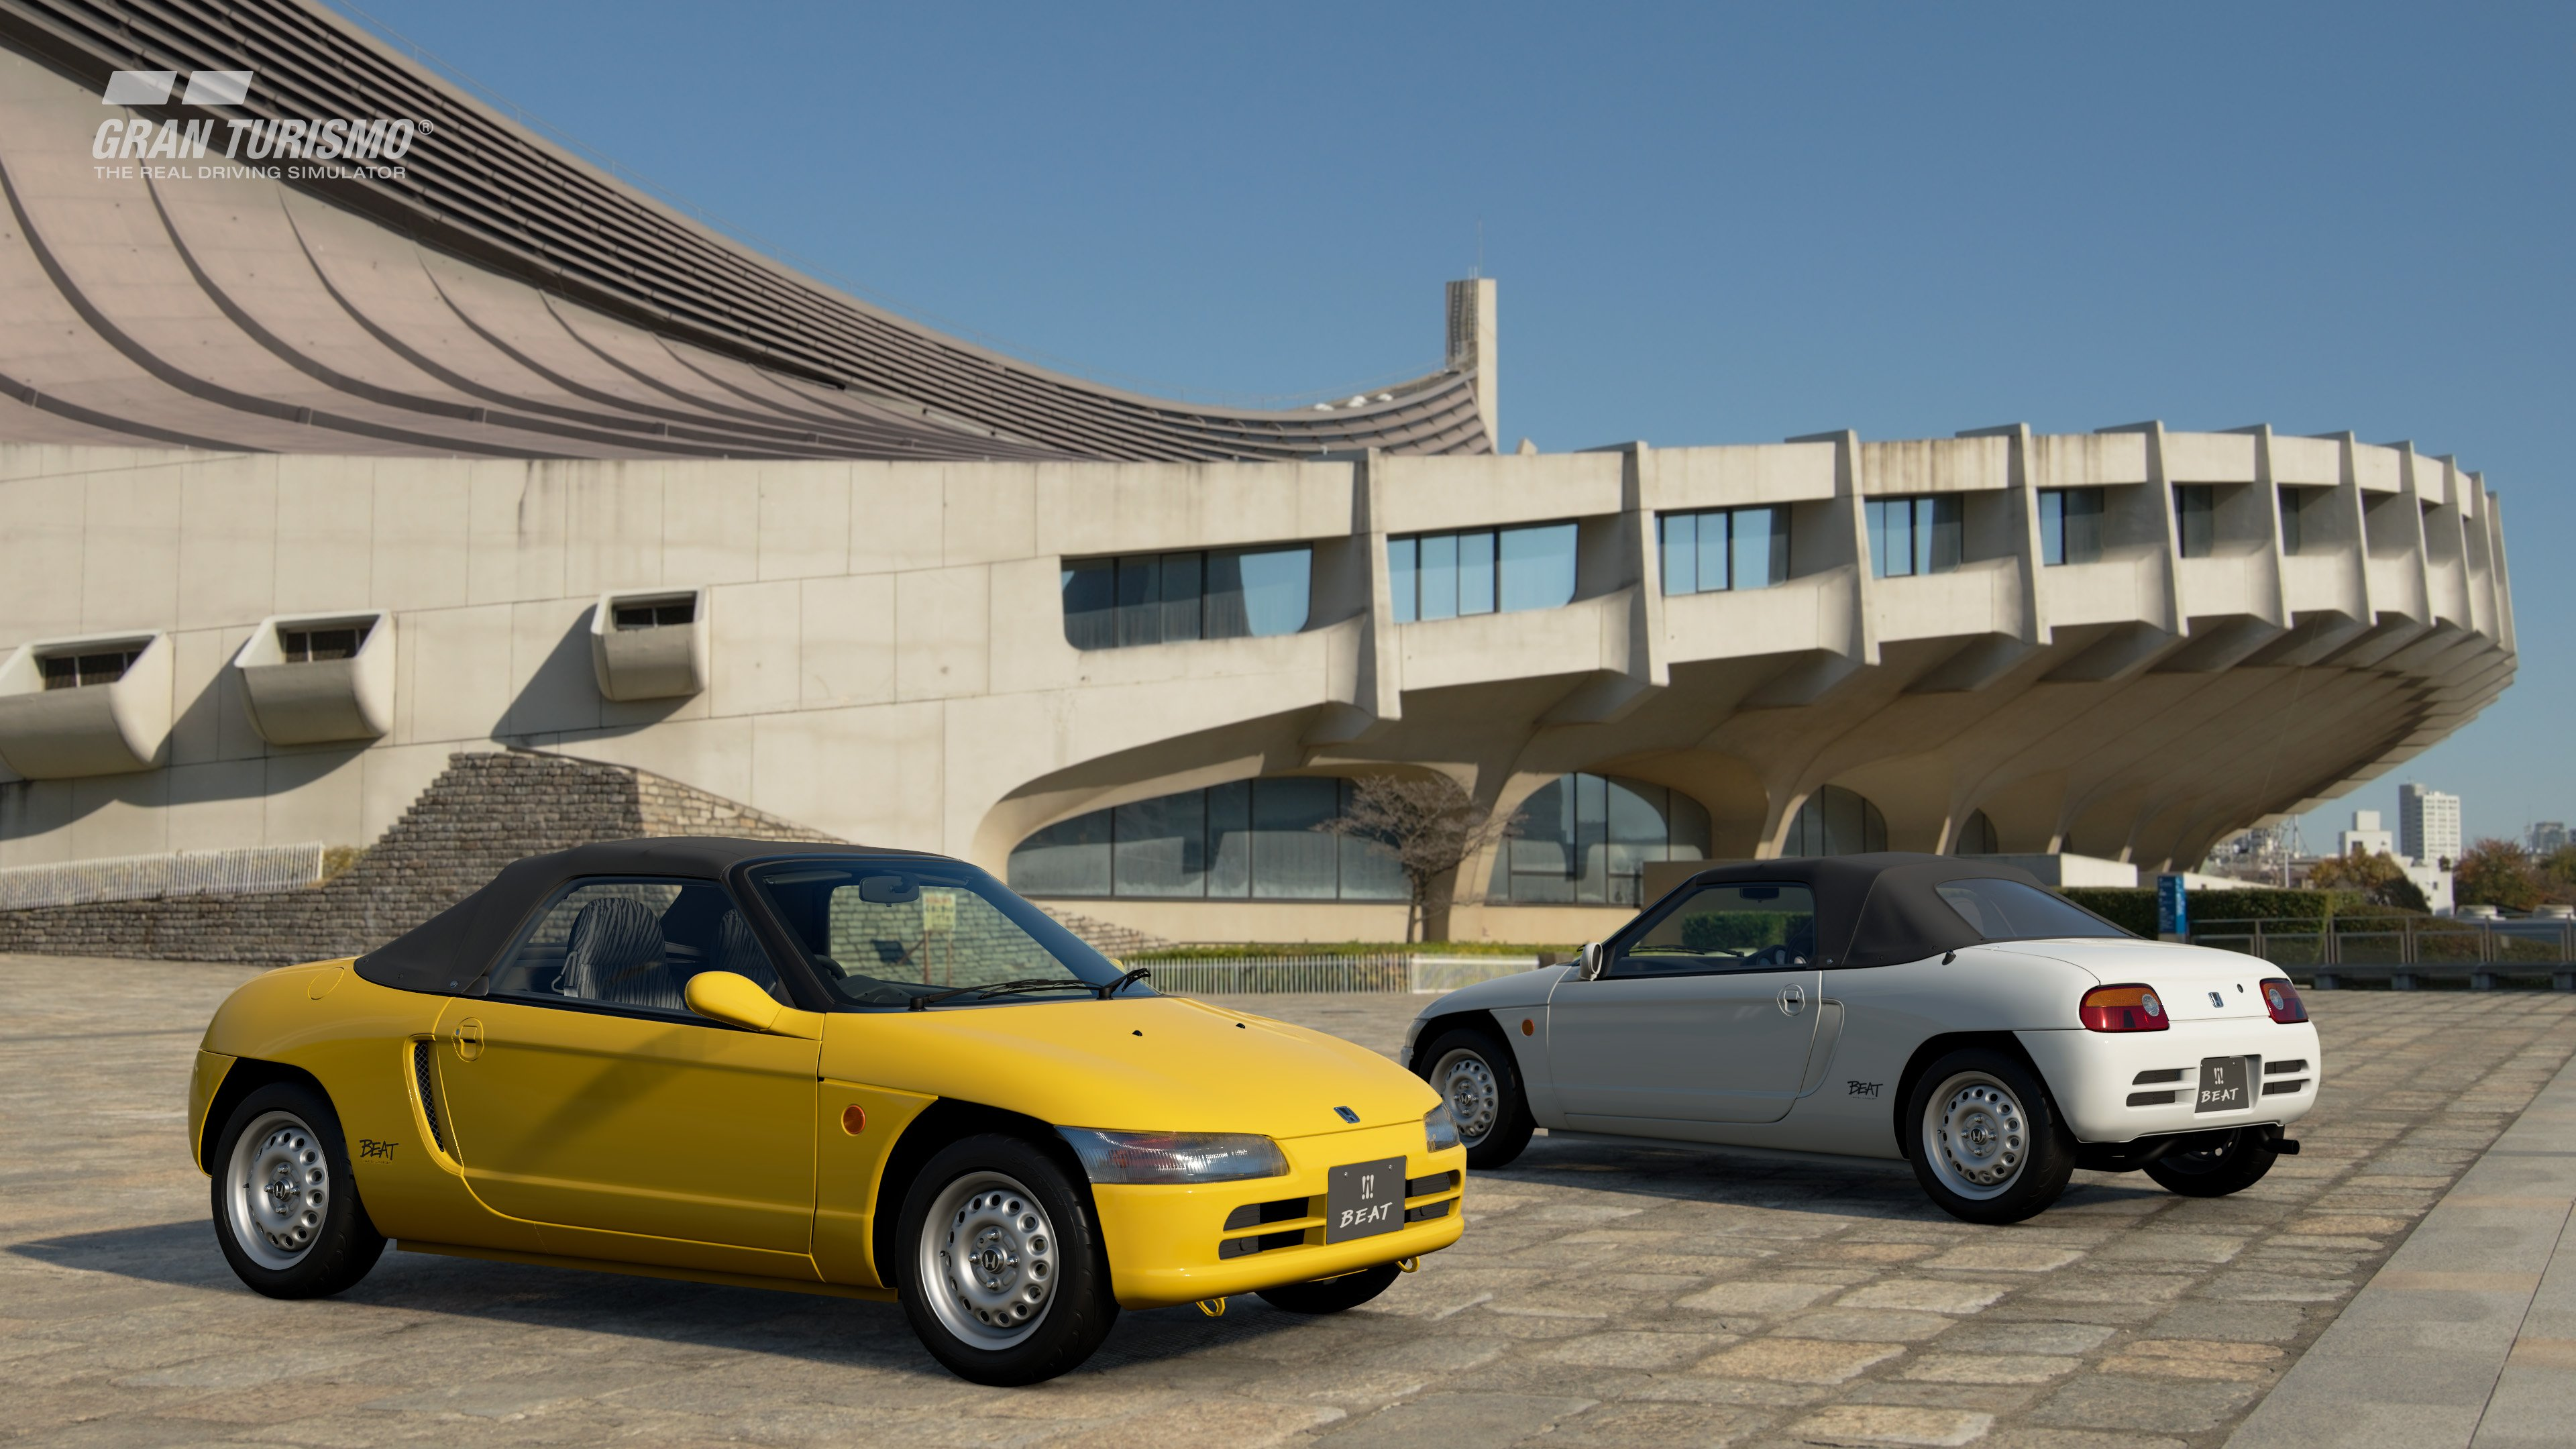 Gran Turismo Sport July update Honda Beat '91 (N100) 1